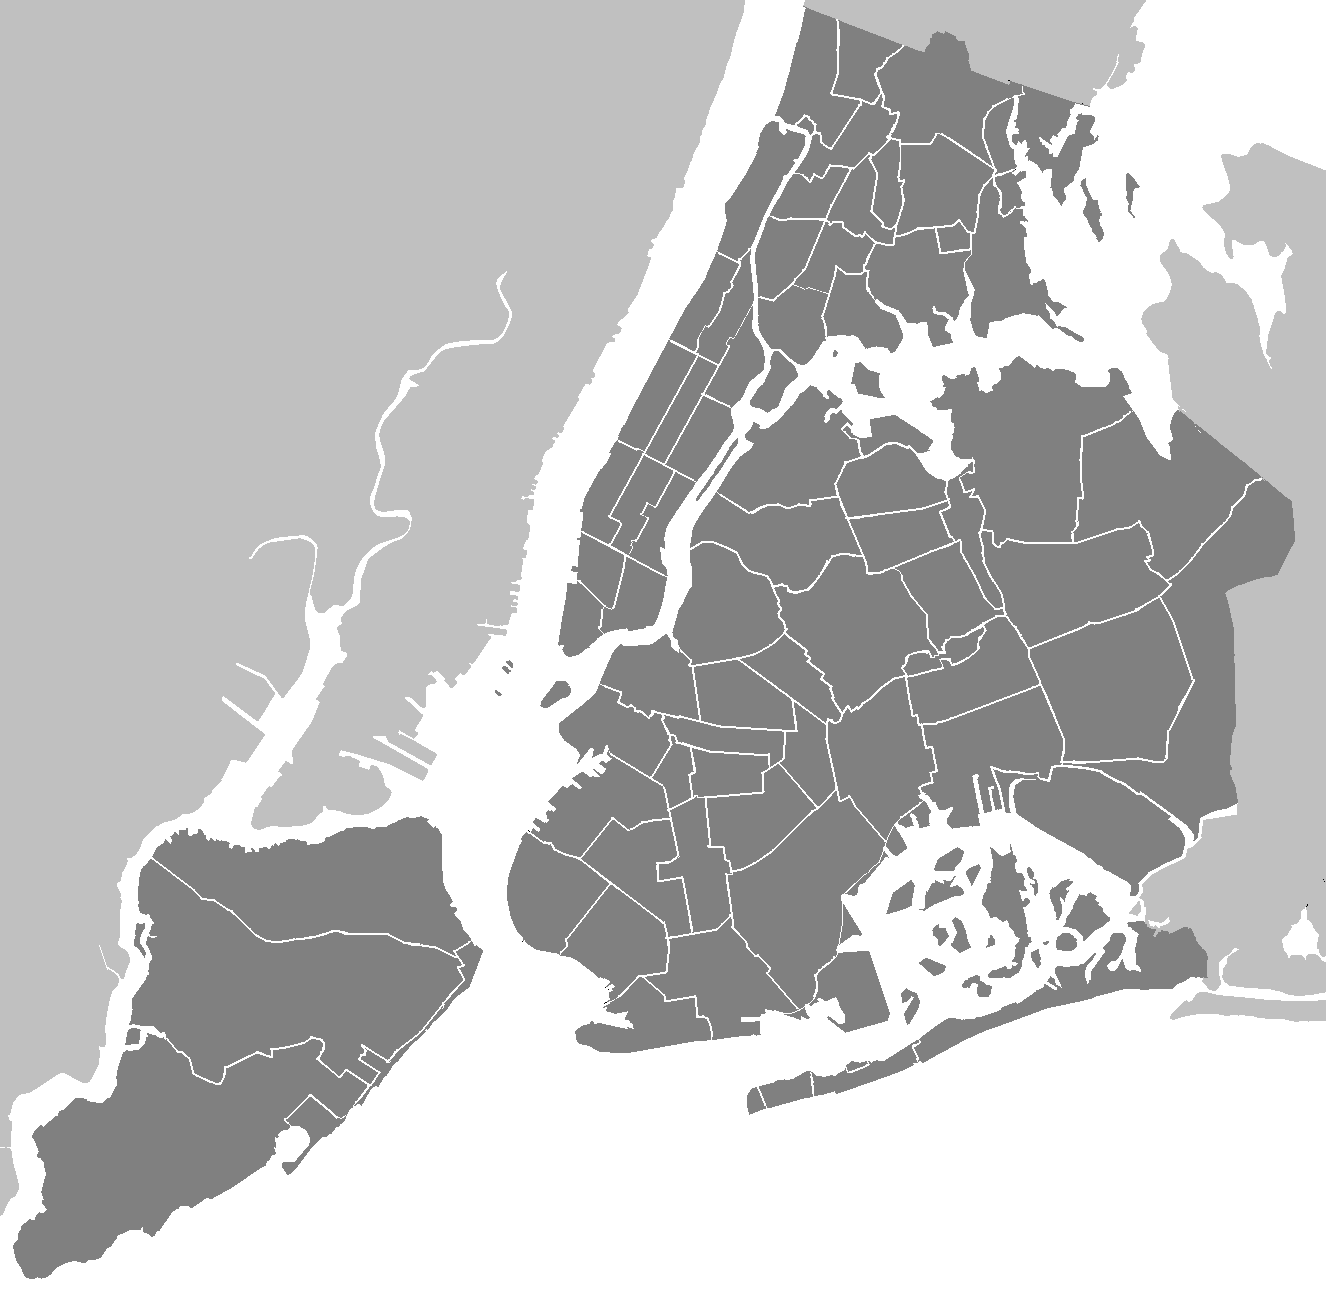 Blank Usable Map Of NYC Boroughs - Nyc map of boroughs